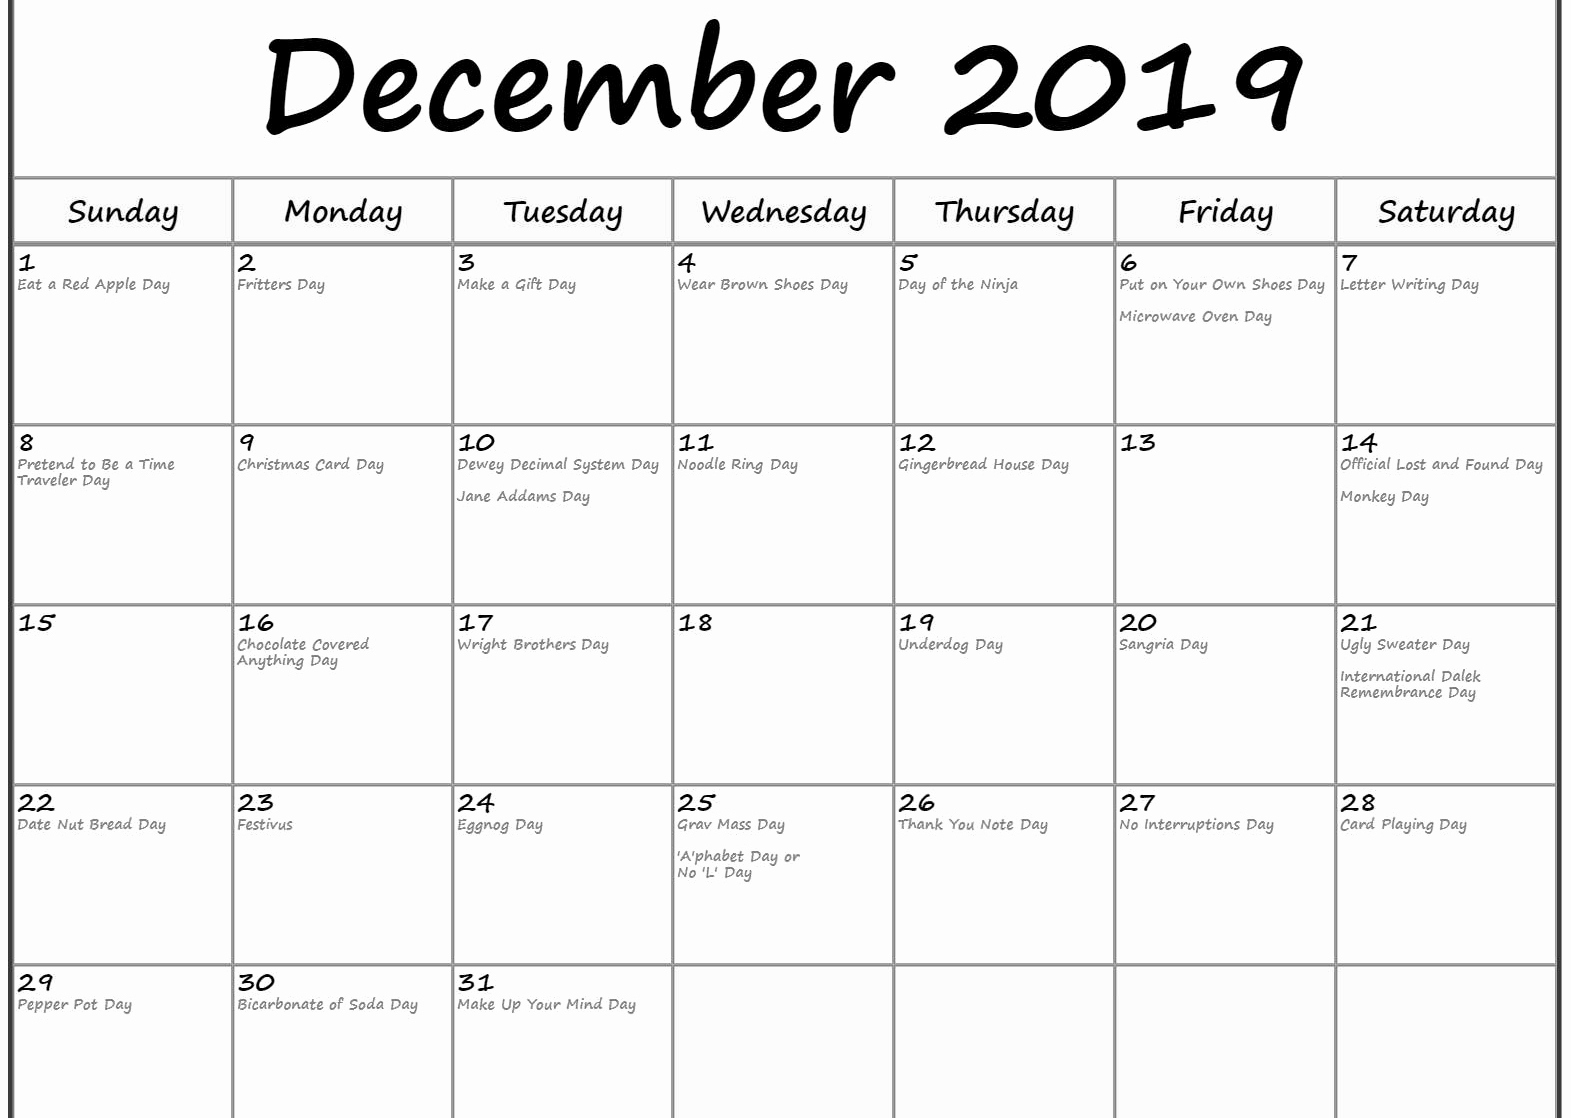 Holidays Calendar for December 2019